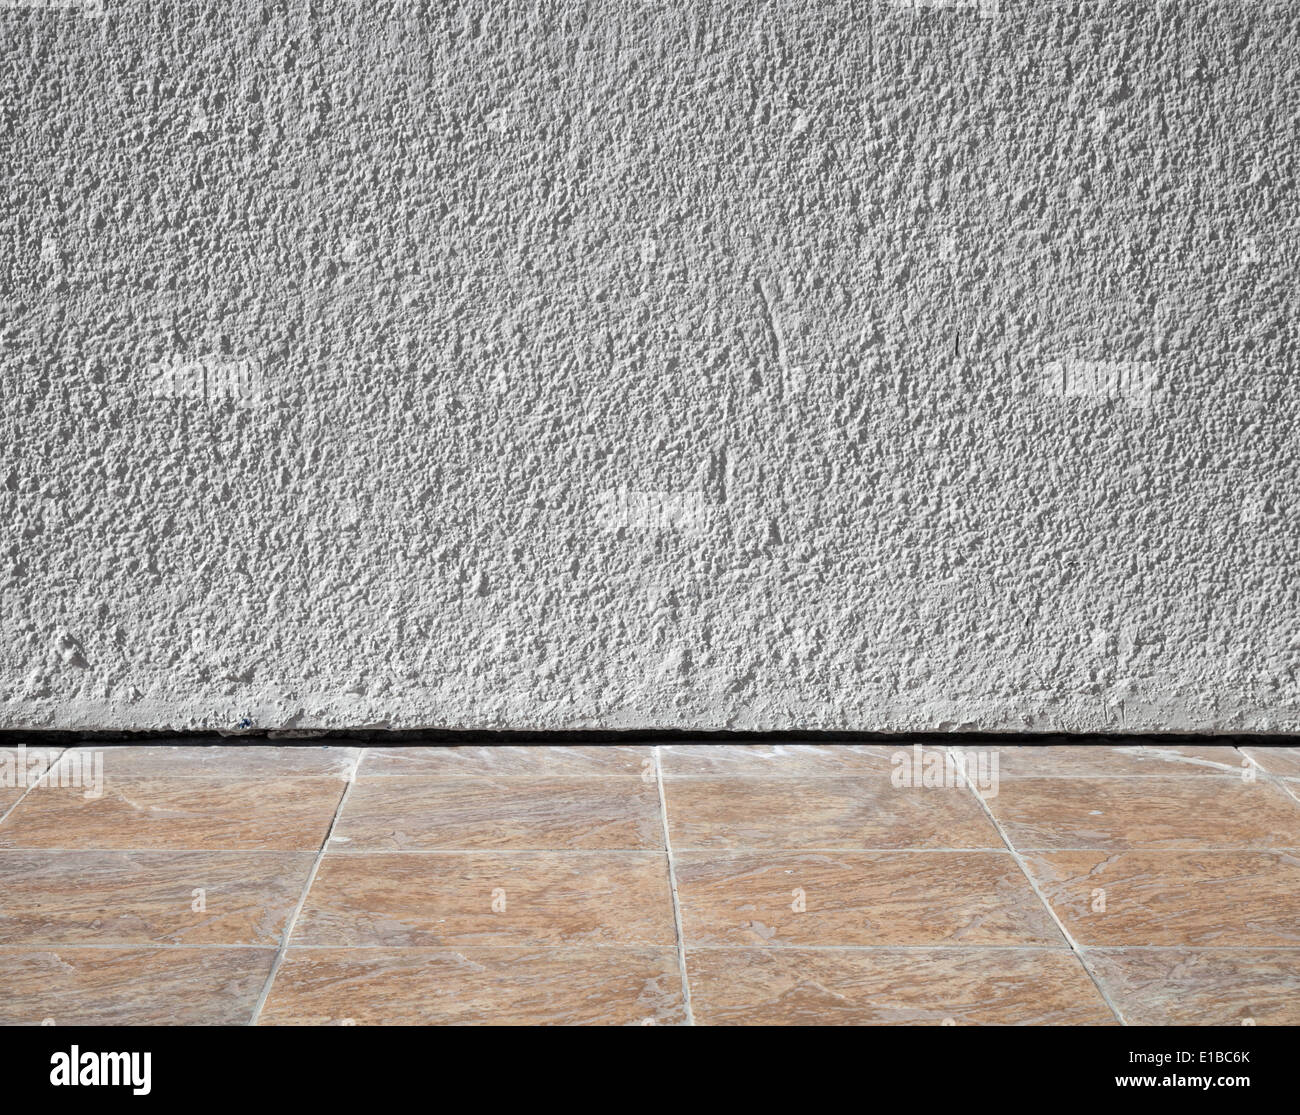 Awesome Abstract Interior Background With Rough Stucco Wall And Tiling Floor